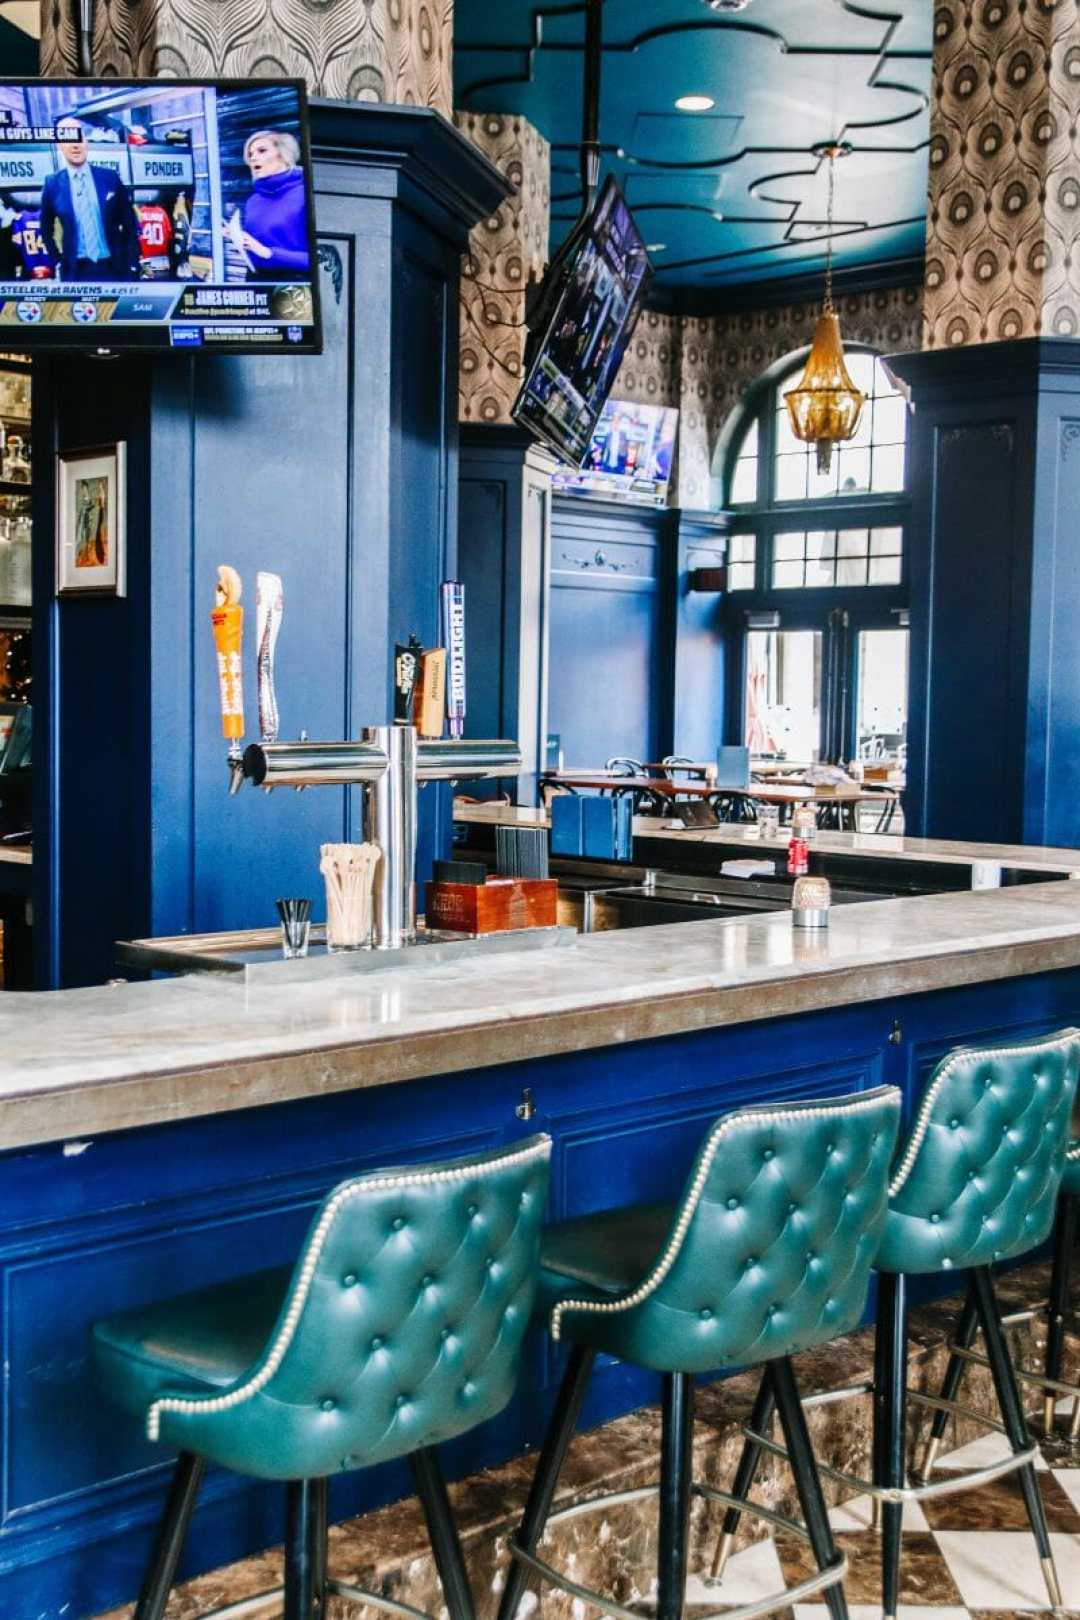 Your Guide to Eating, Drinking, and Staying in St. Louis, Missouri: The Chase Park Plaza Royal Sonesta, by JC Phelps of JCP Eats, A Kentucky-based Blogger